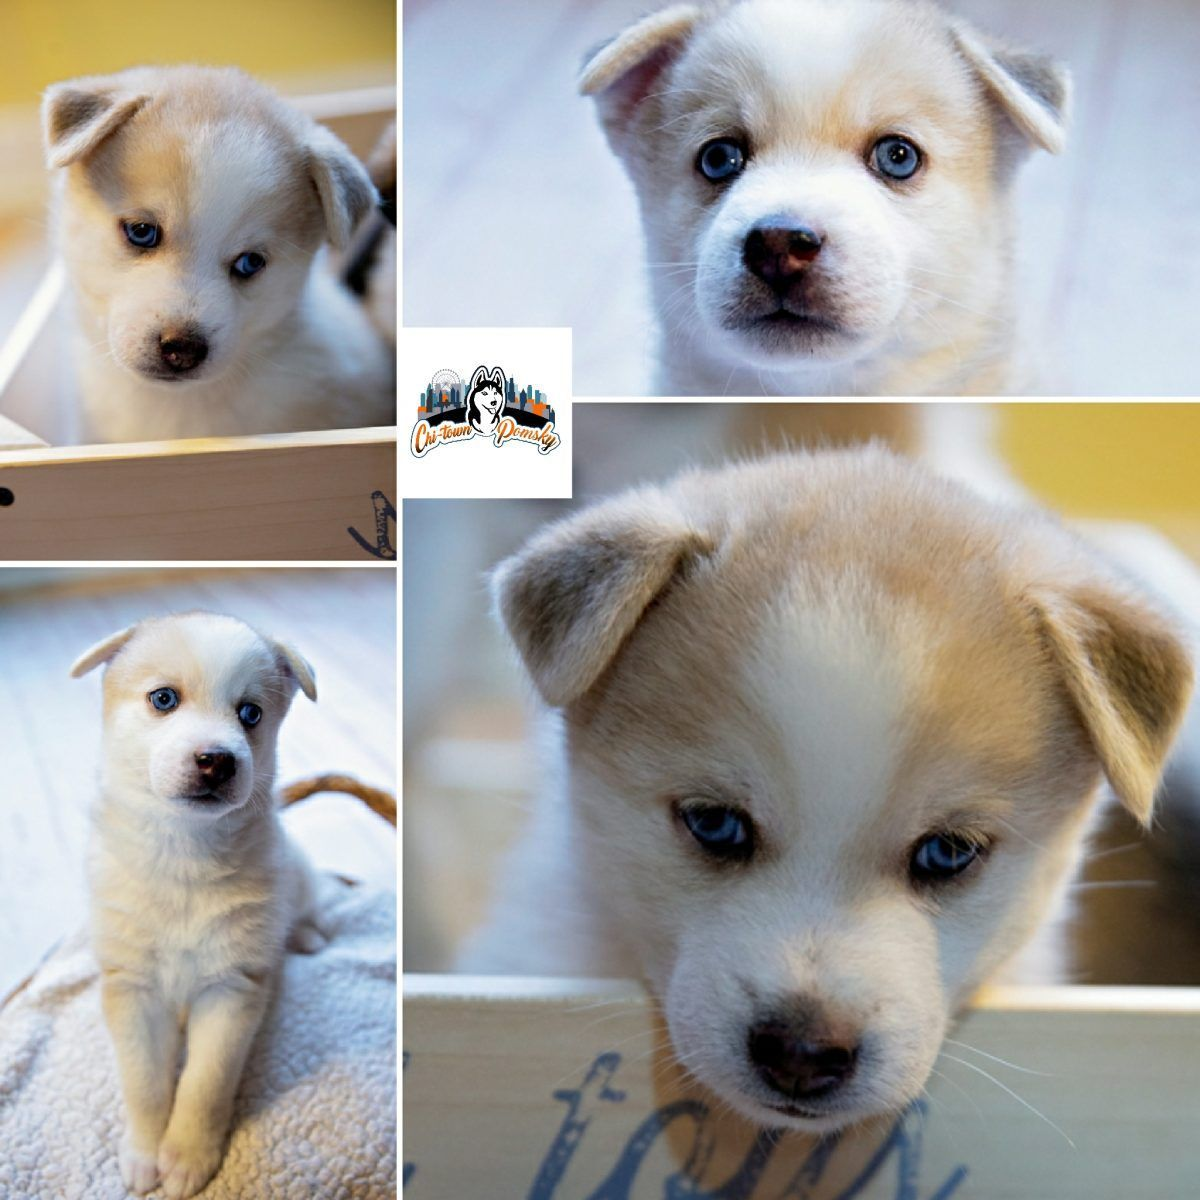 Cute Puppies For Sale Online At Vip Puppies We Make It Easy For